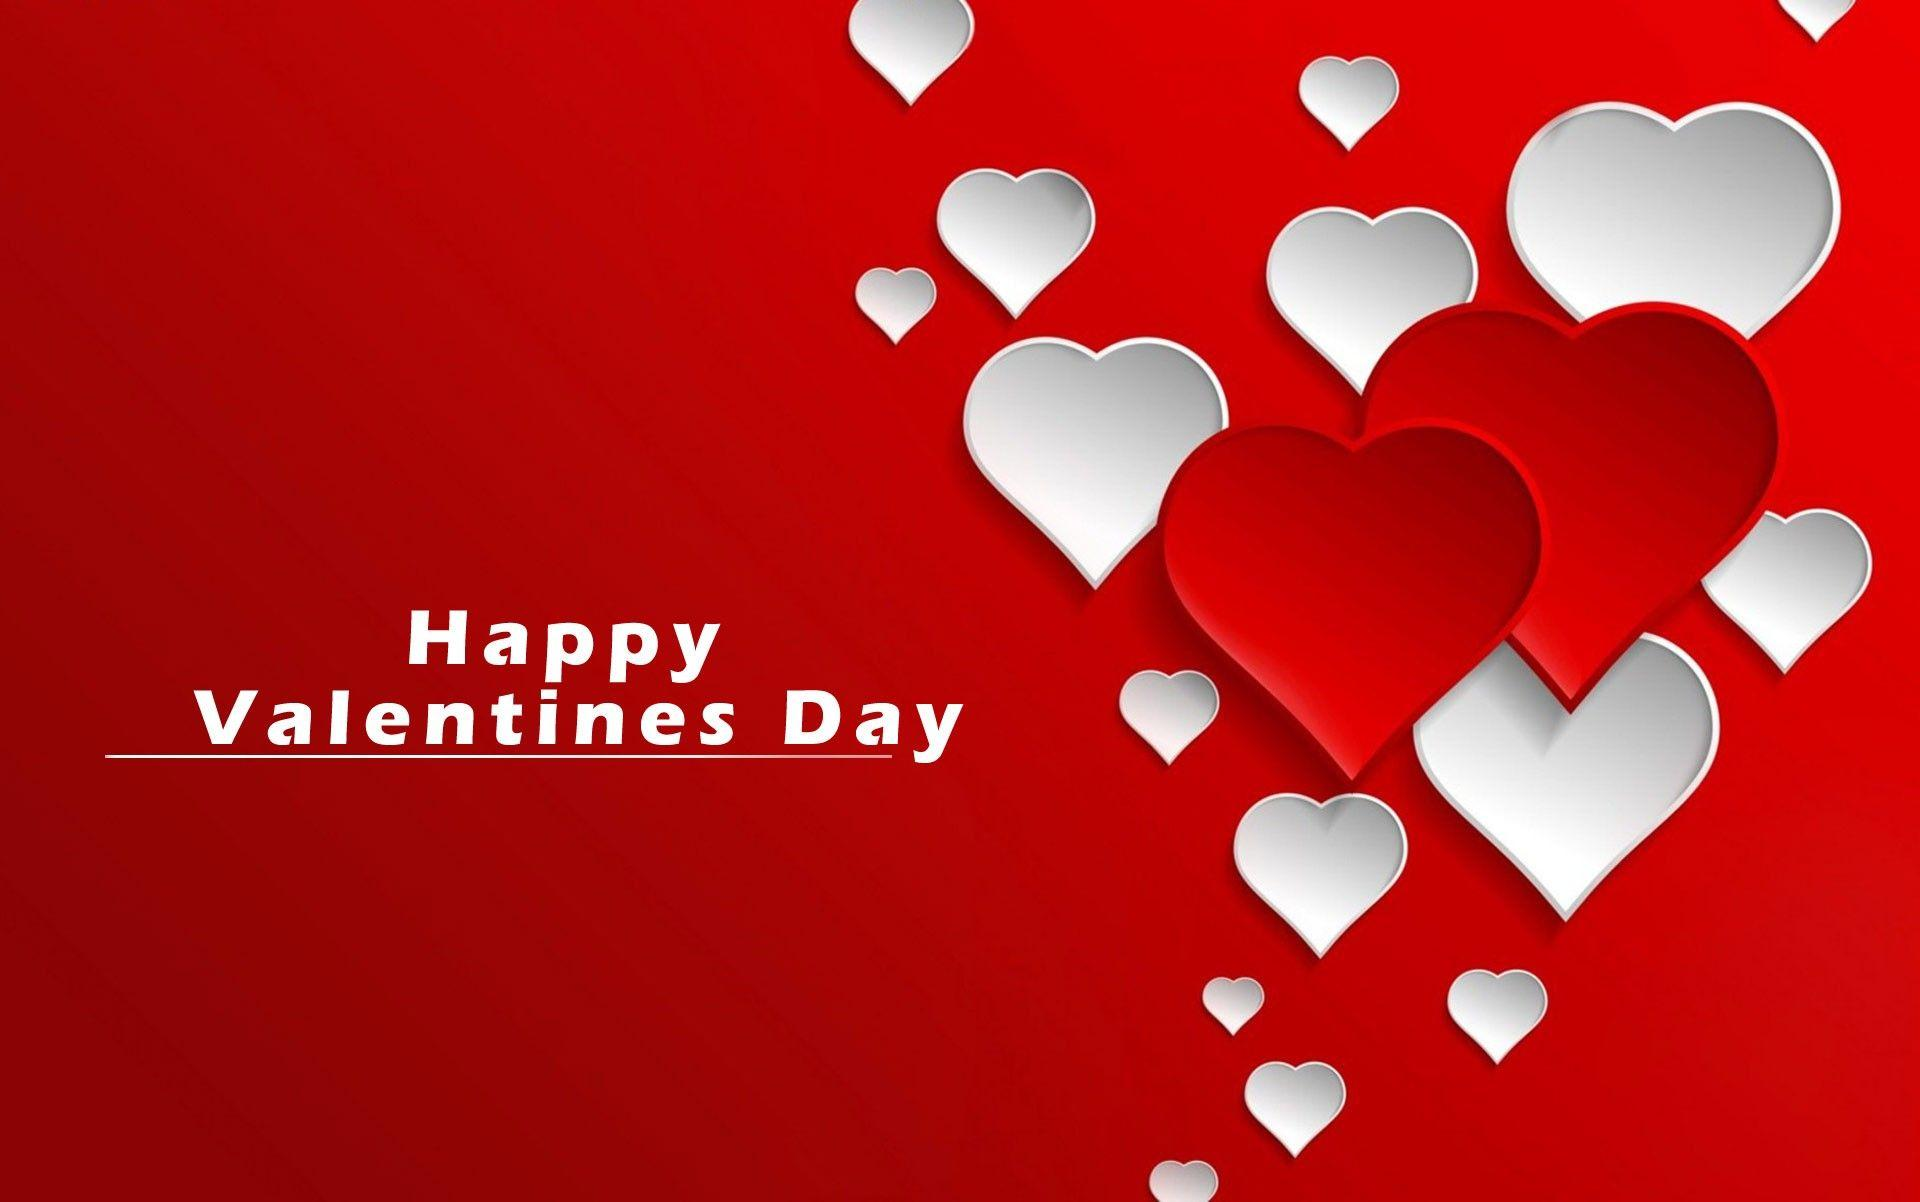 Happy Valentine's Day 2018 Images HD, 3D Wallpapers, Greetings ...